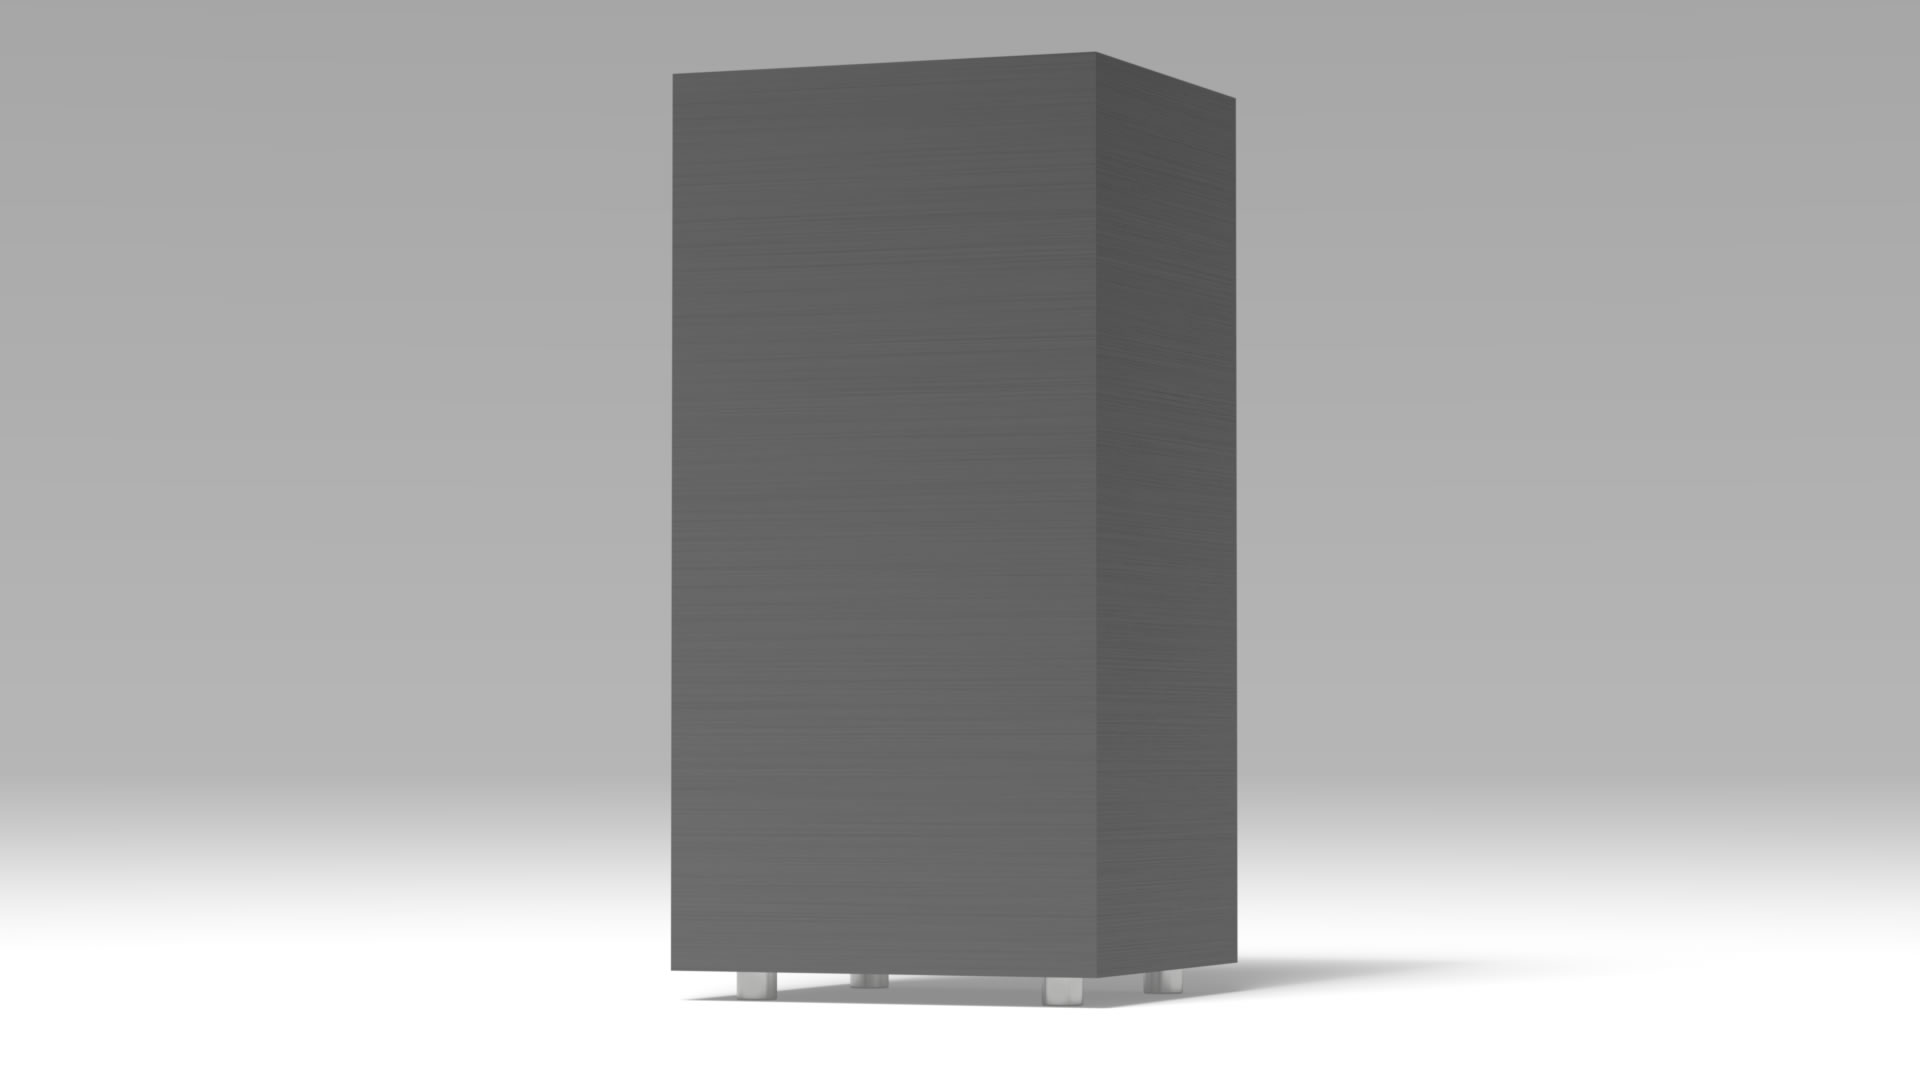 Tower-Isometric-Front.jpg